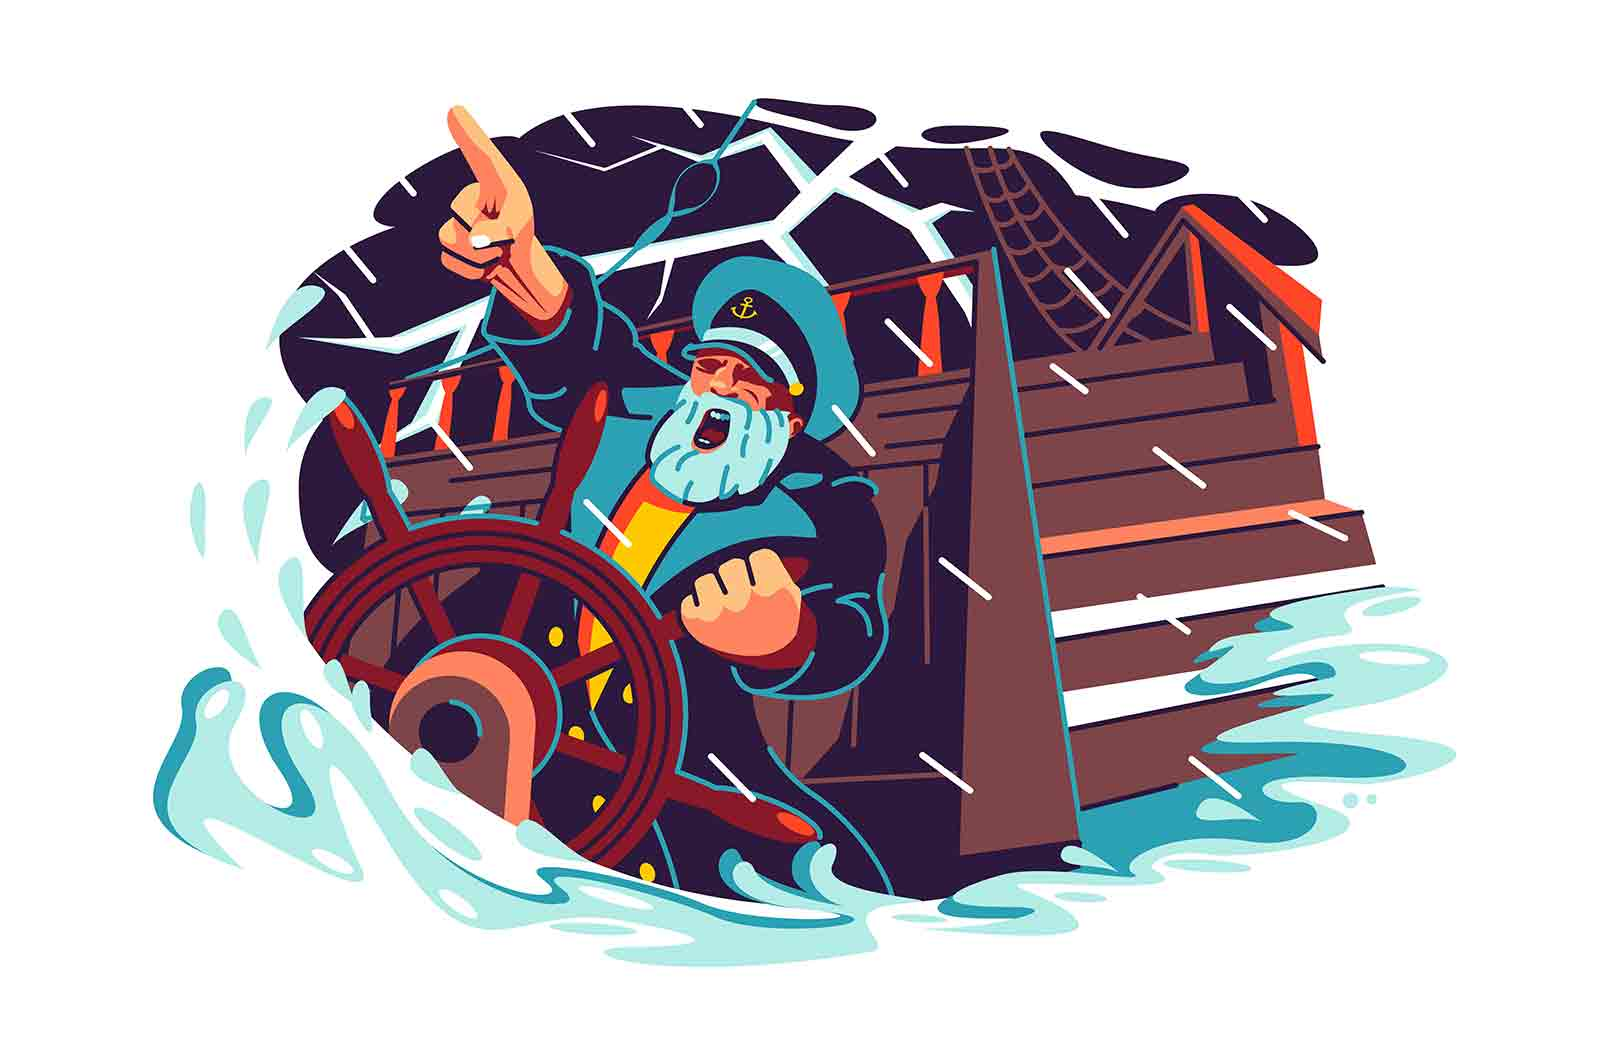 Captain character standing at helm of boat vector illustration. Storm, rain and big waves flat style. Shipwreck, ocean ride, sea captain concept. Isolated on white background